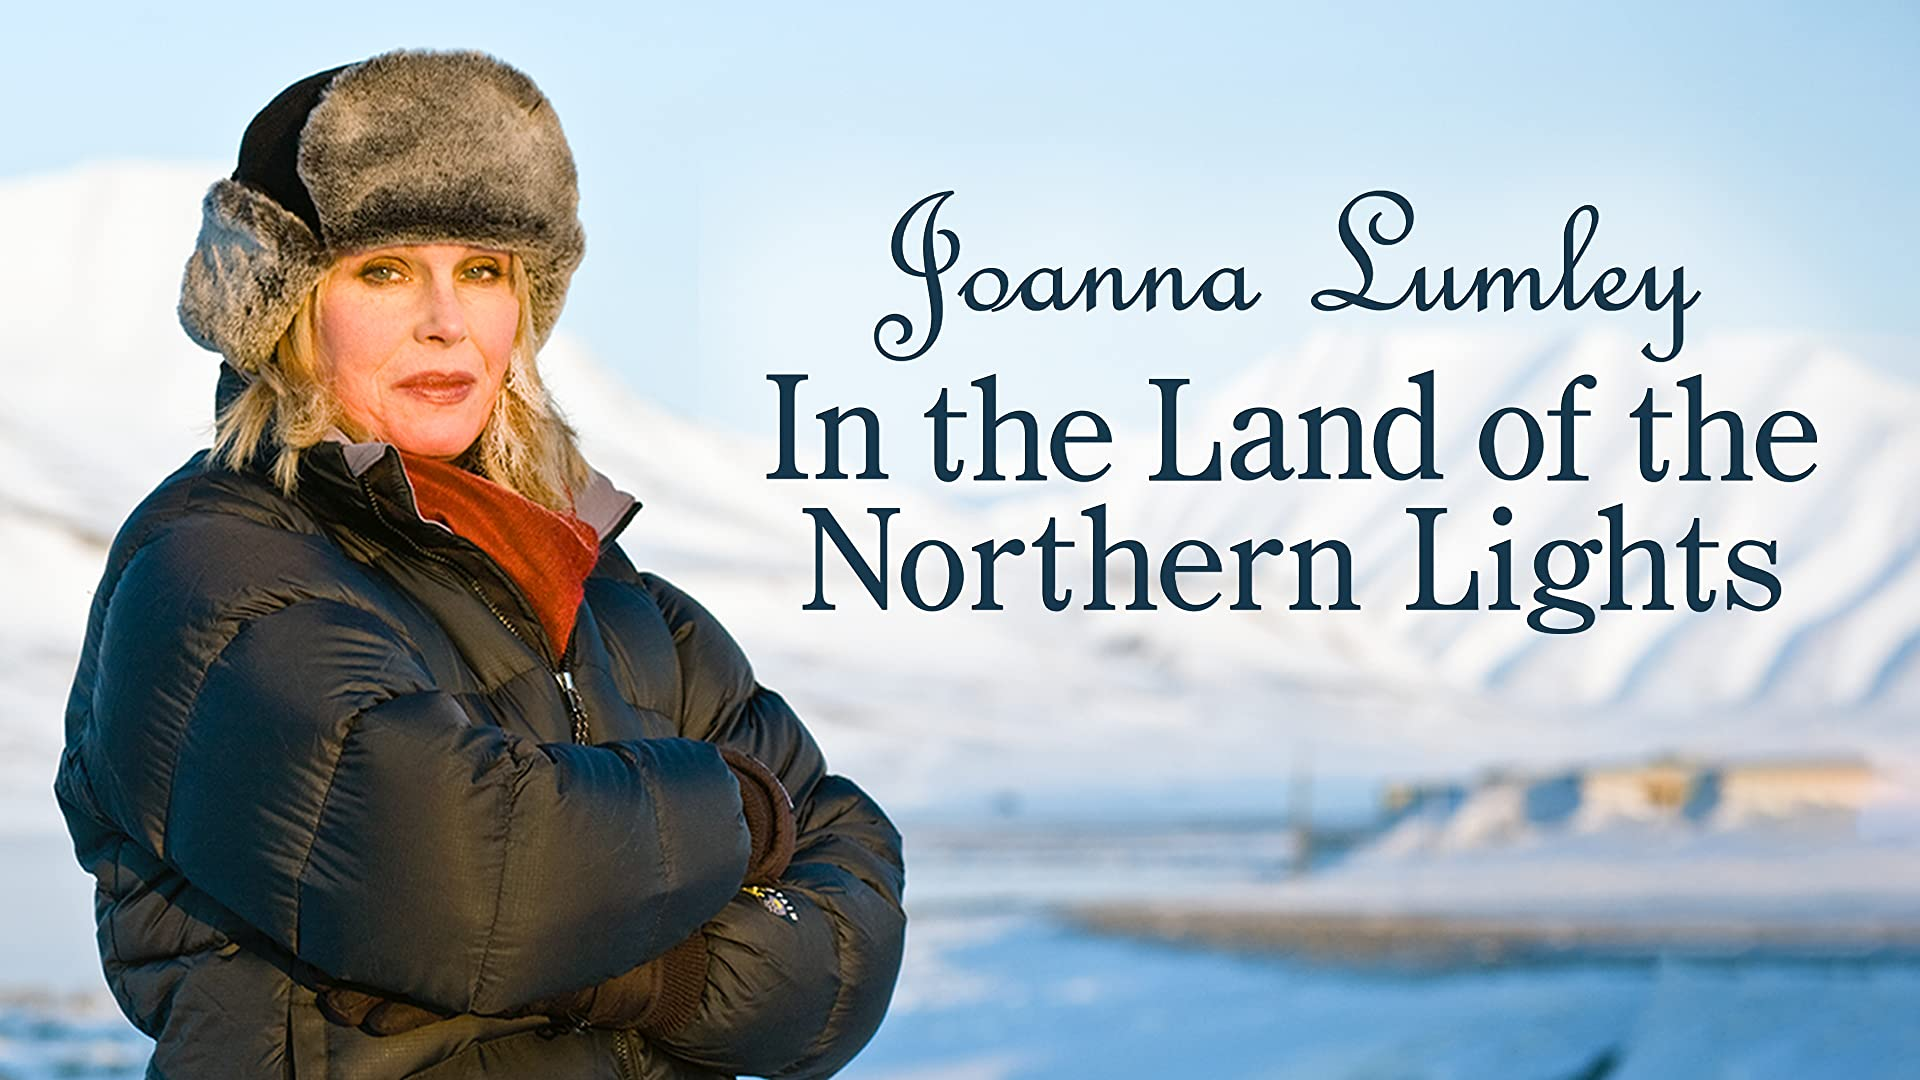 Joanna Lumley in the Land of the Northern Lights - Series 1